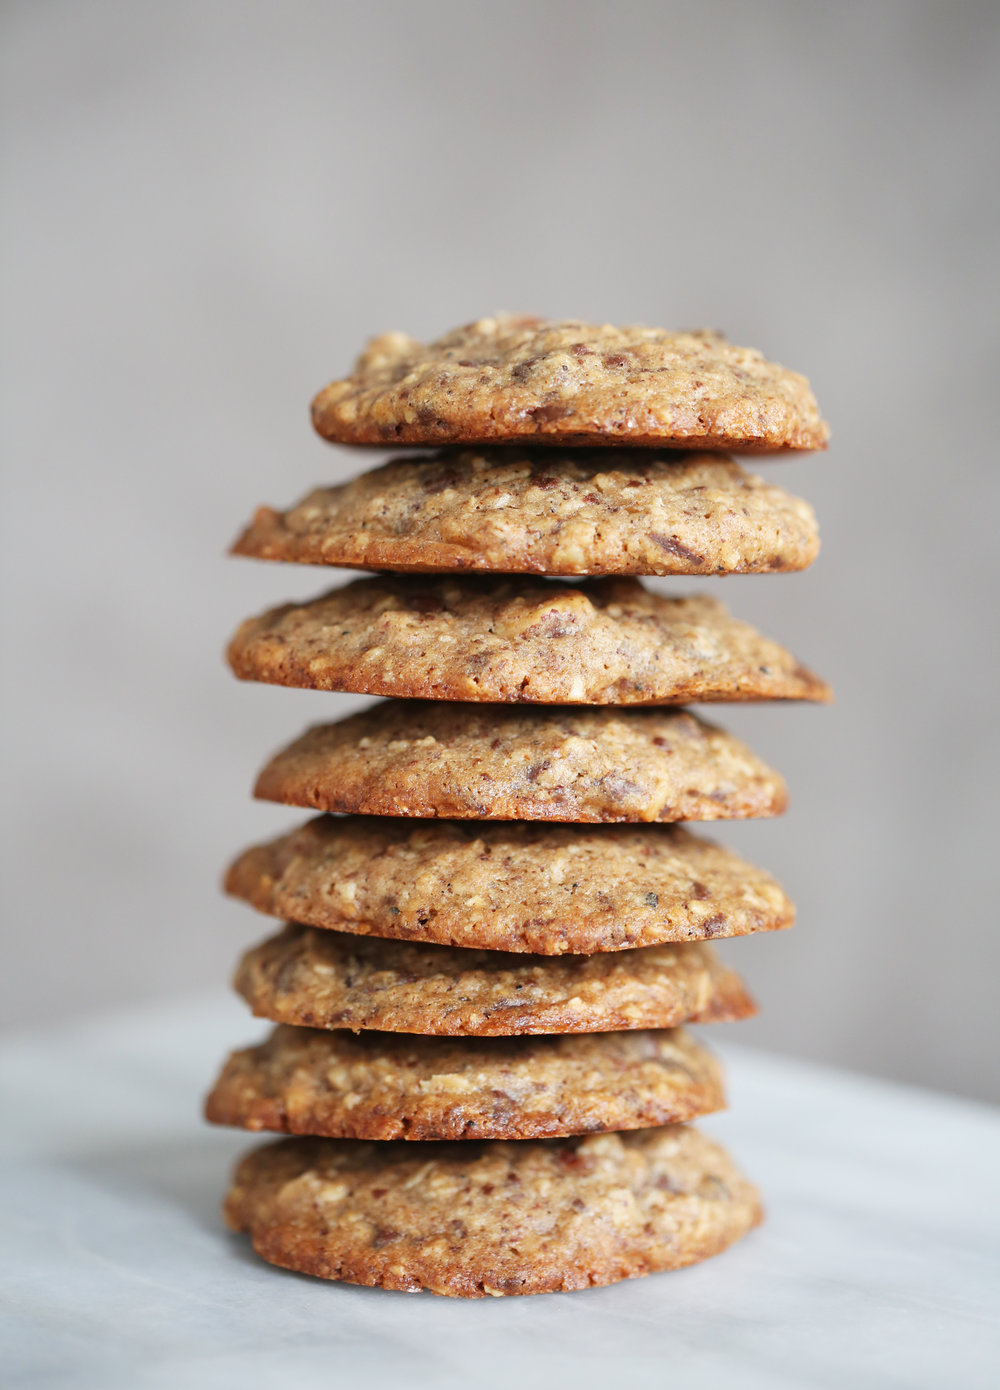 Cookies photographed for Seattle-based Comfort Baking Co.'s social media campaign.